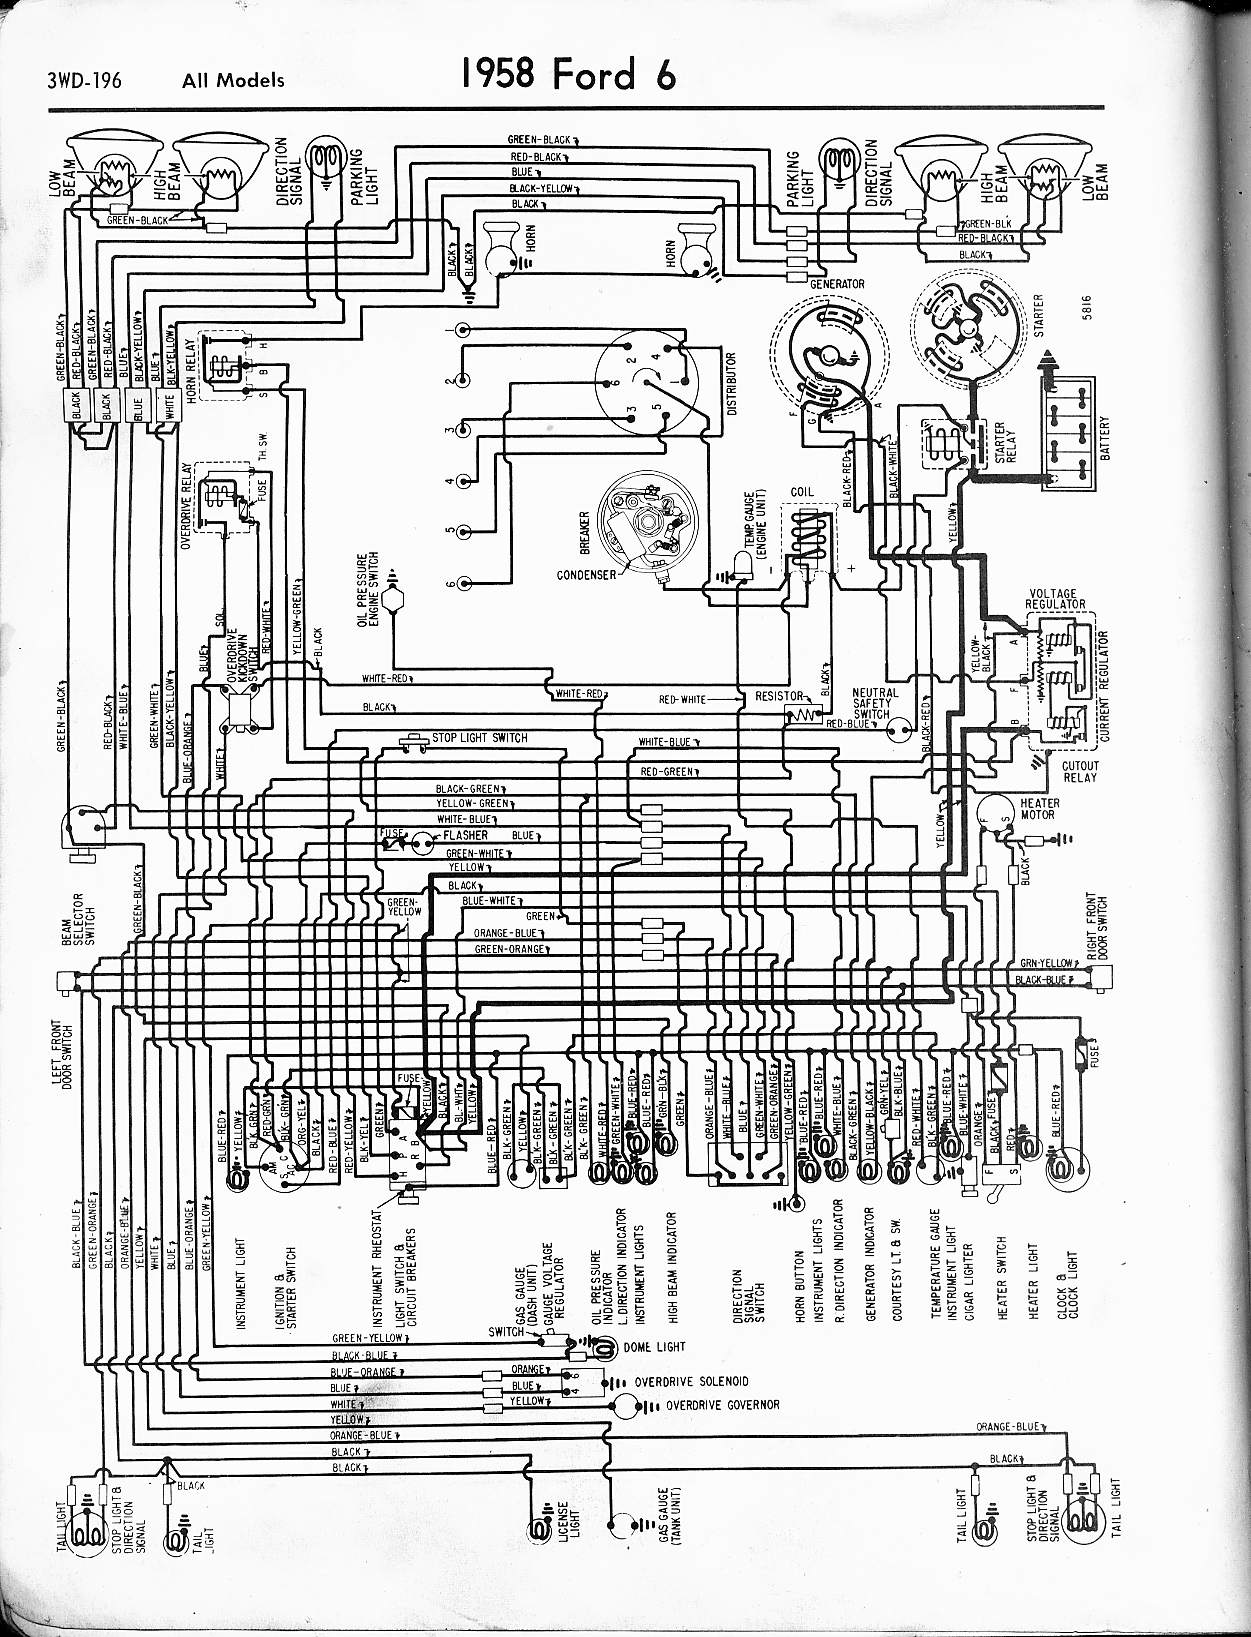 1973 ford f100 alternator wiring diagram basic electronics wiring Ford Econoline Wiring-Diagram Fuel 1967 ford econoline wiring diagram wiring diagramford galaxie 500 wiring diagram wiring diagram1964 galaxie 500 speaker